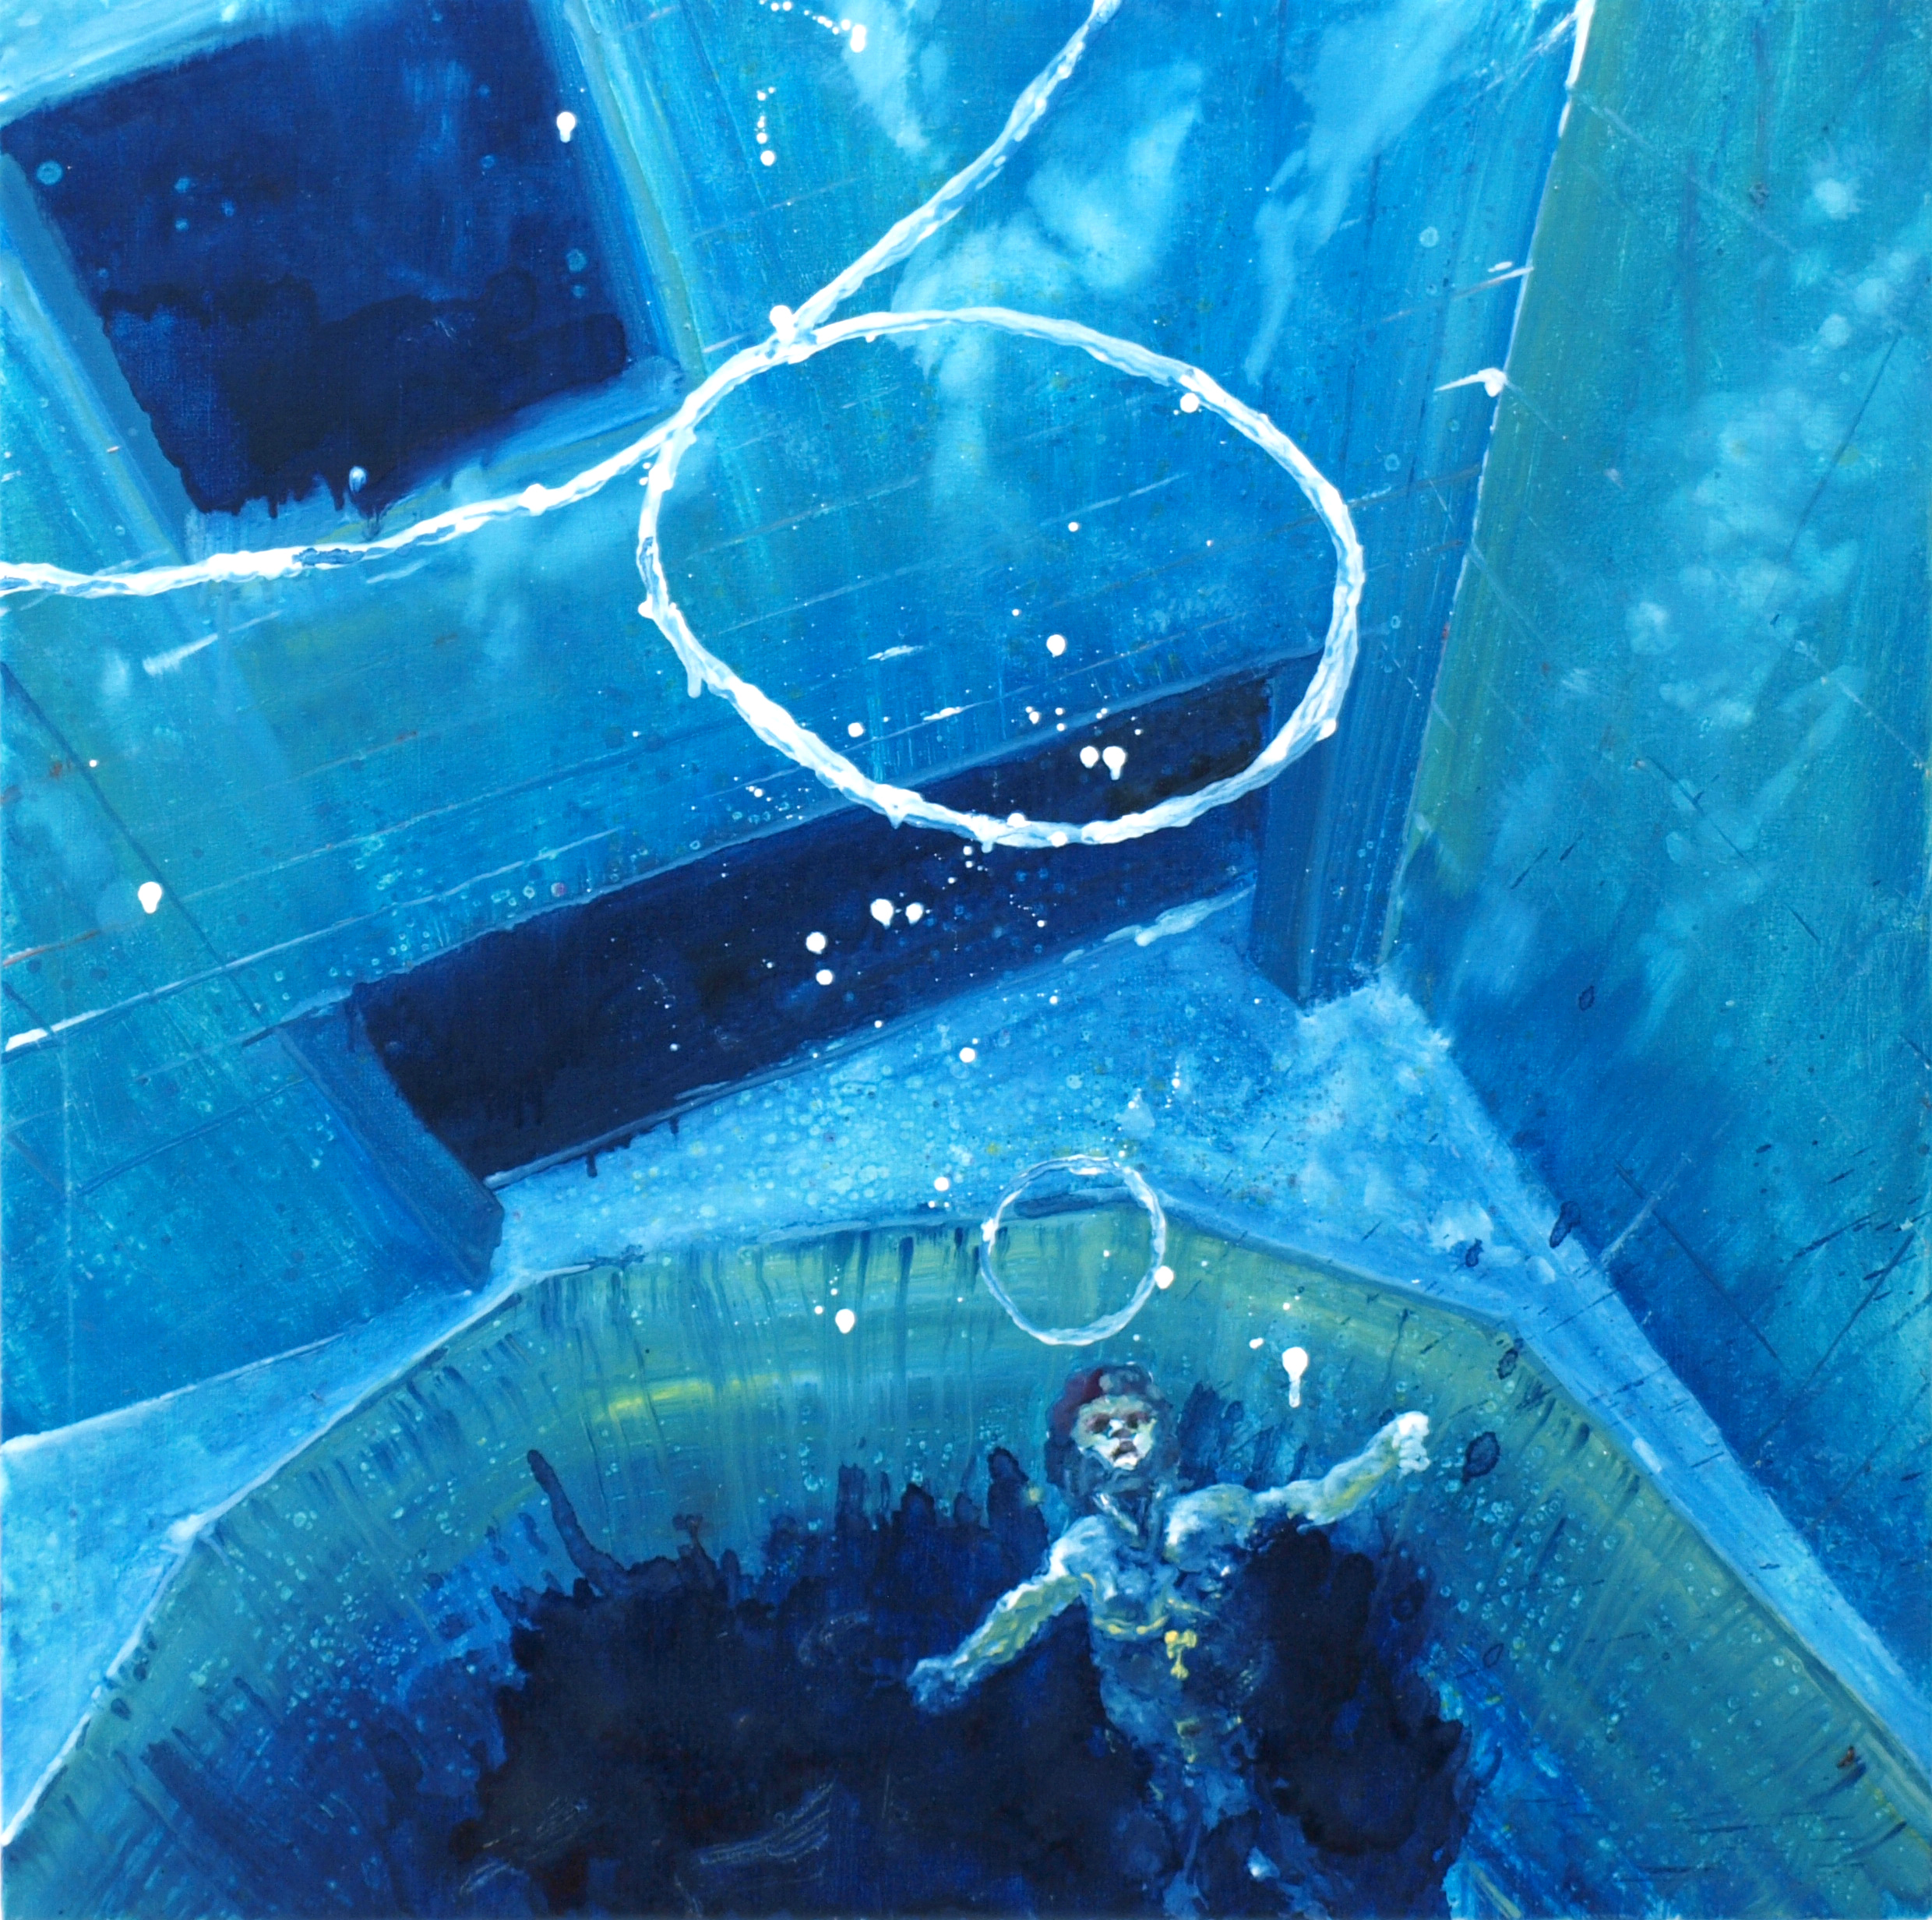 """Untitled (blue)"" oil on linen 77x77 cm 2012 collection HNA Company New York City-Shanghai"